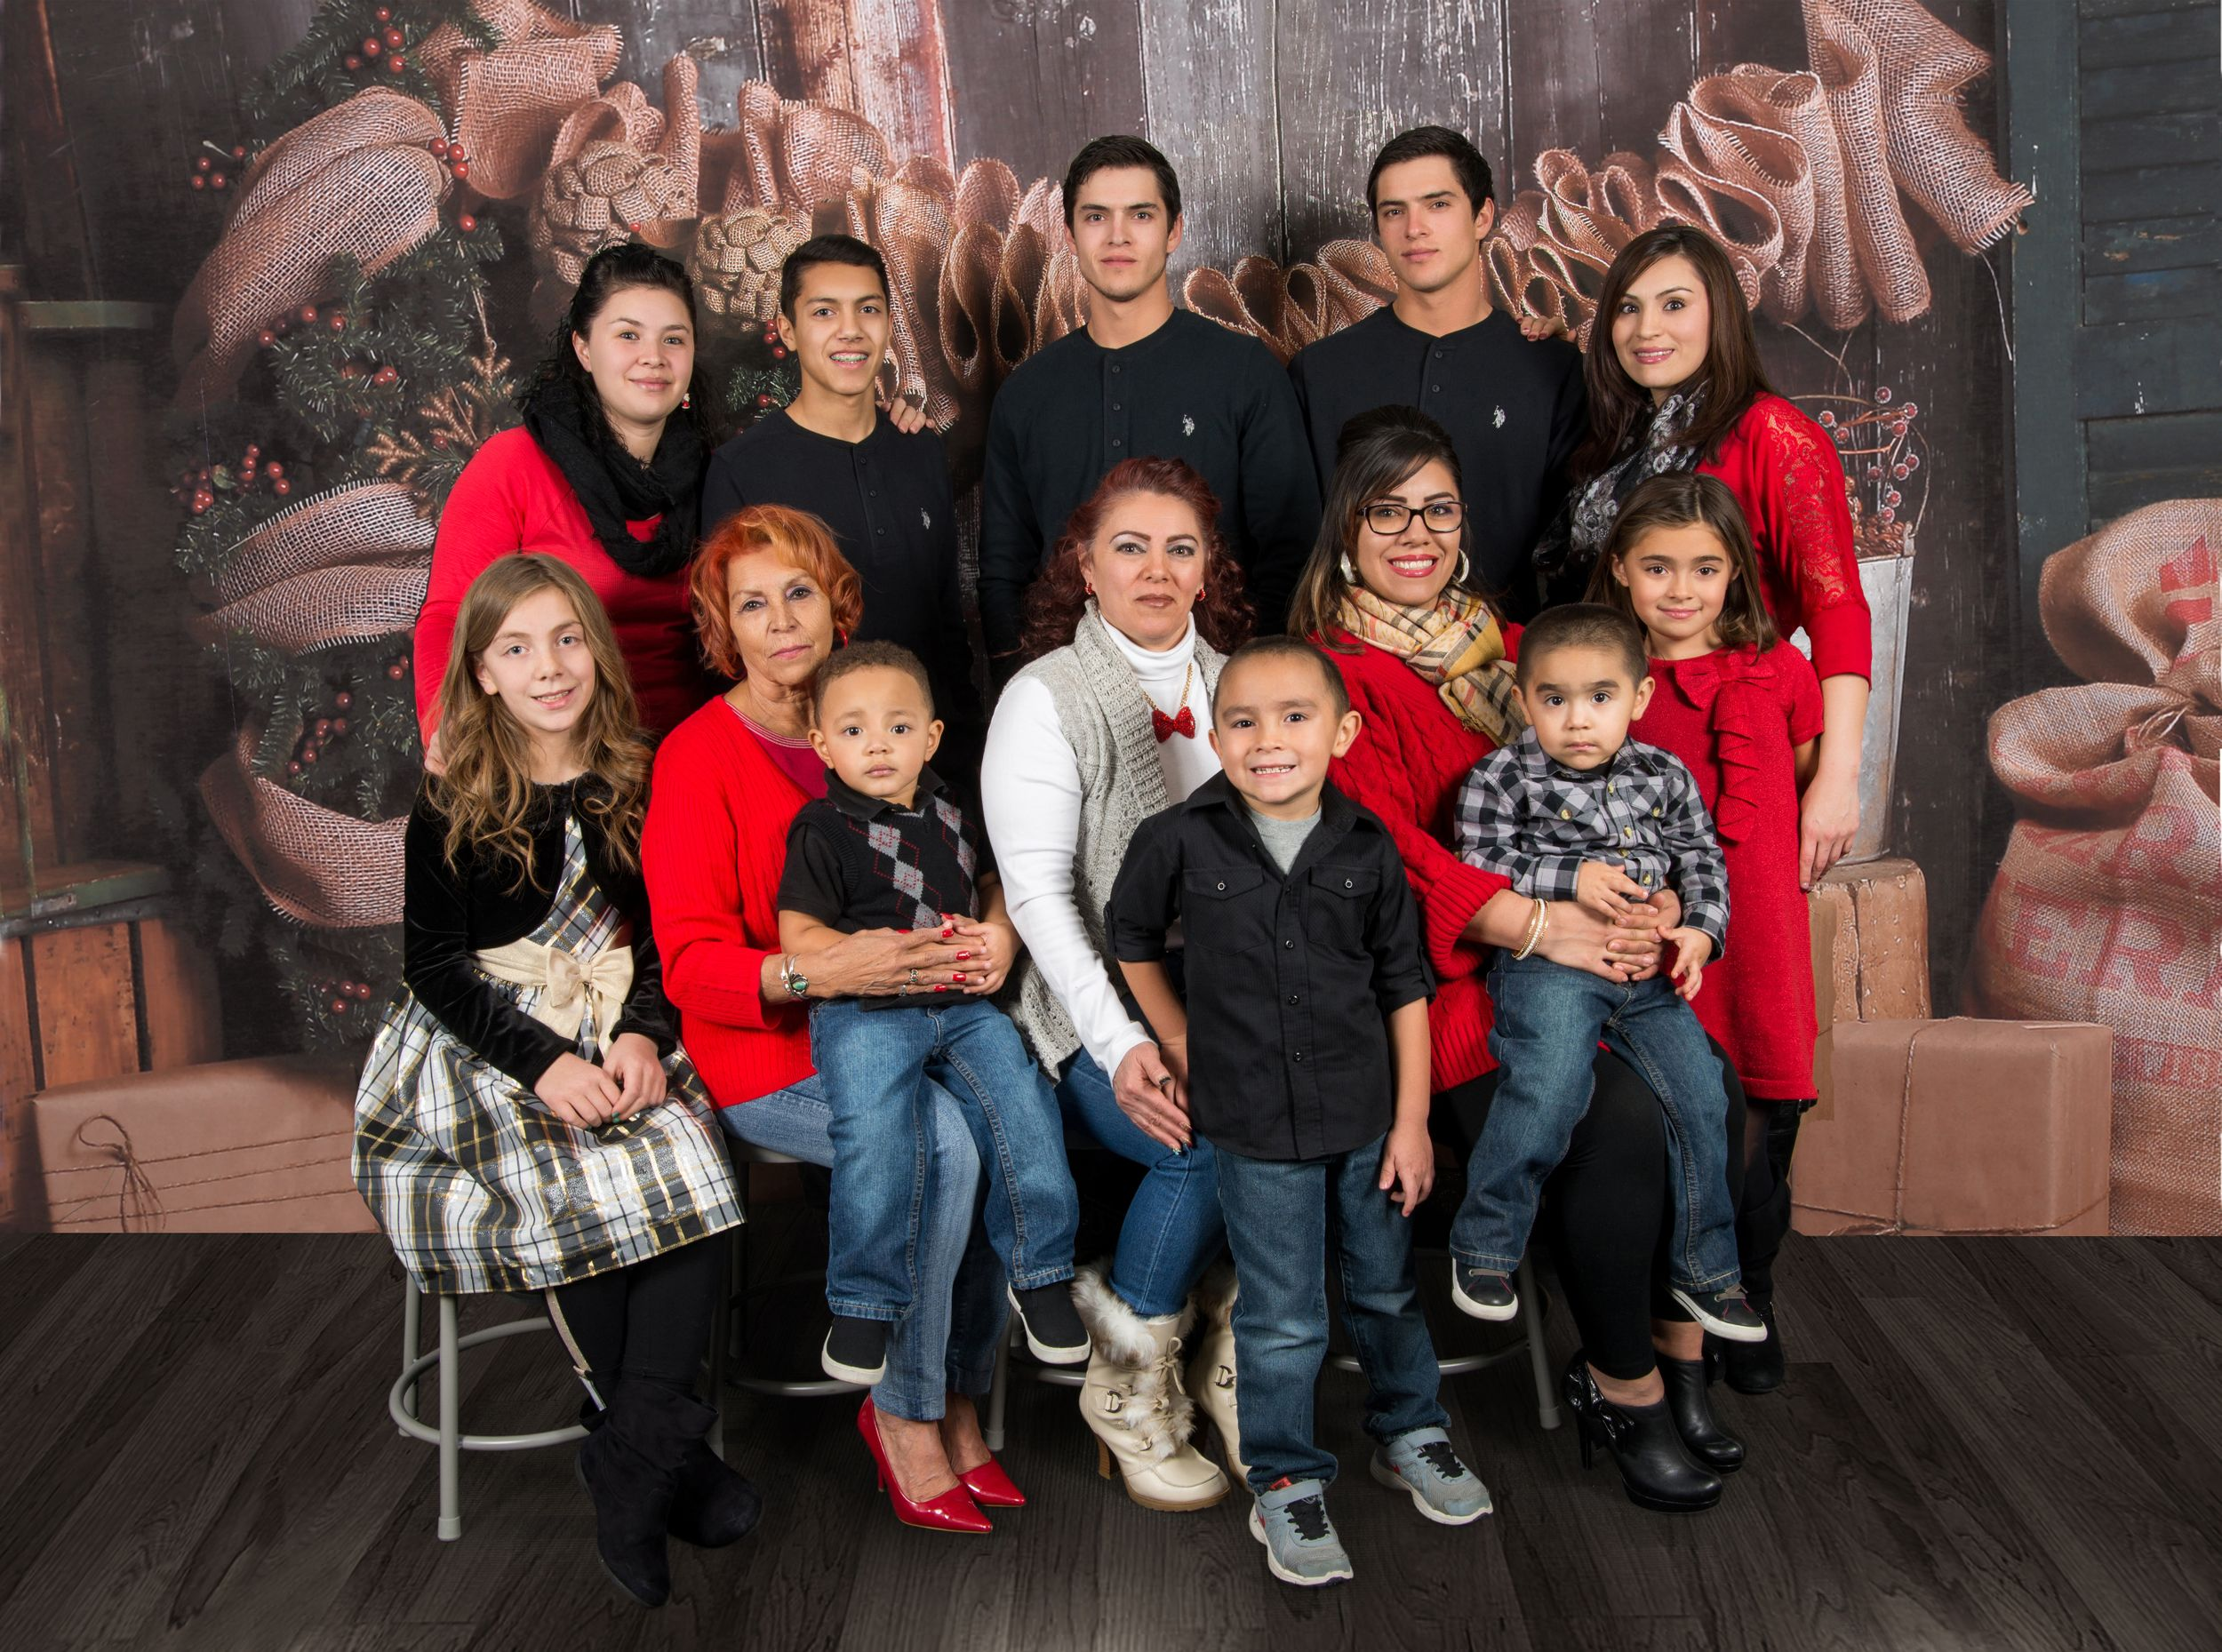 Extended Family of 13 for their Christmas Photo Session